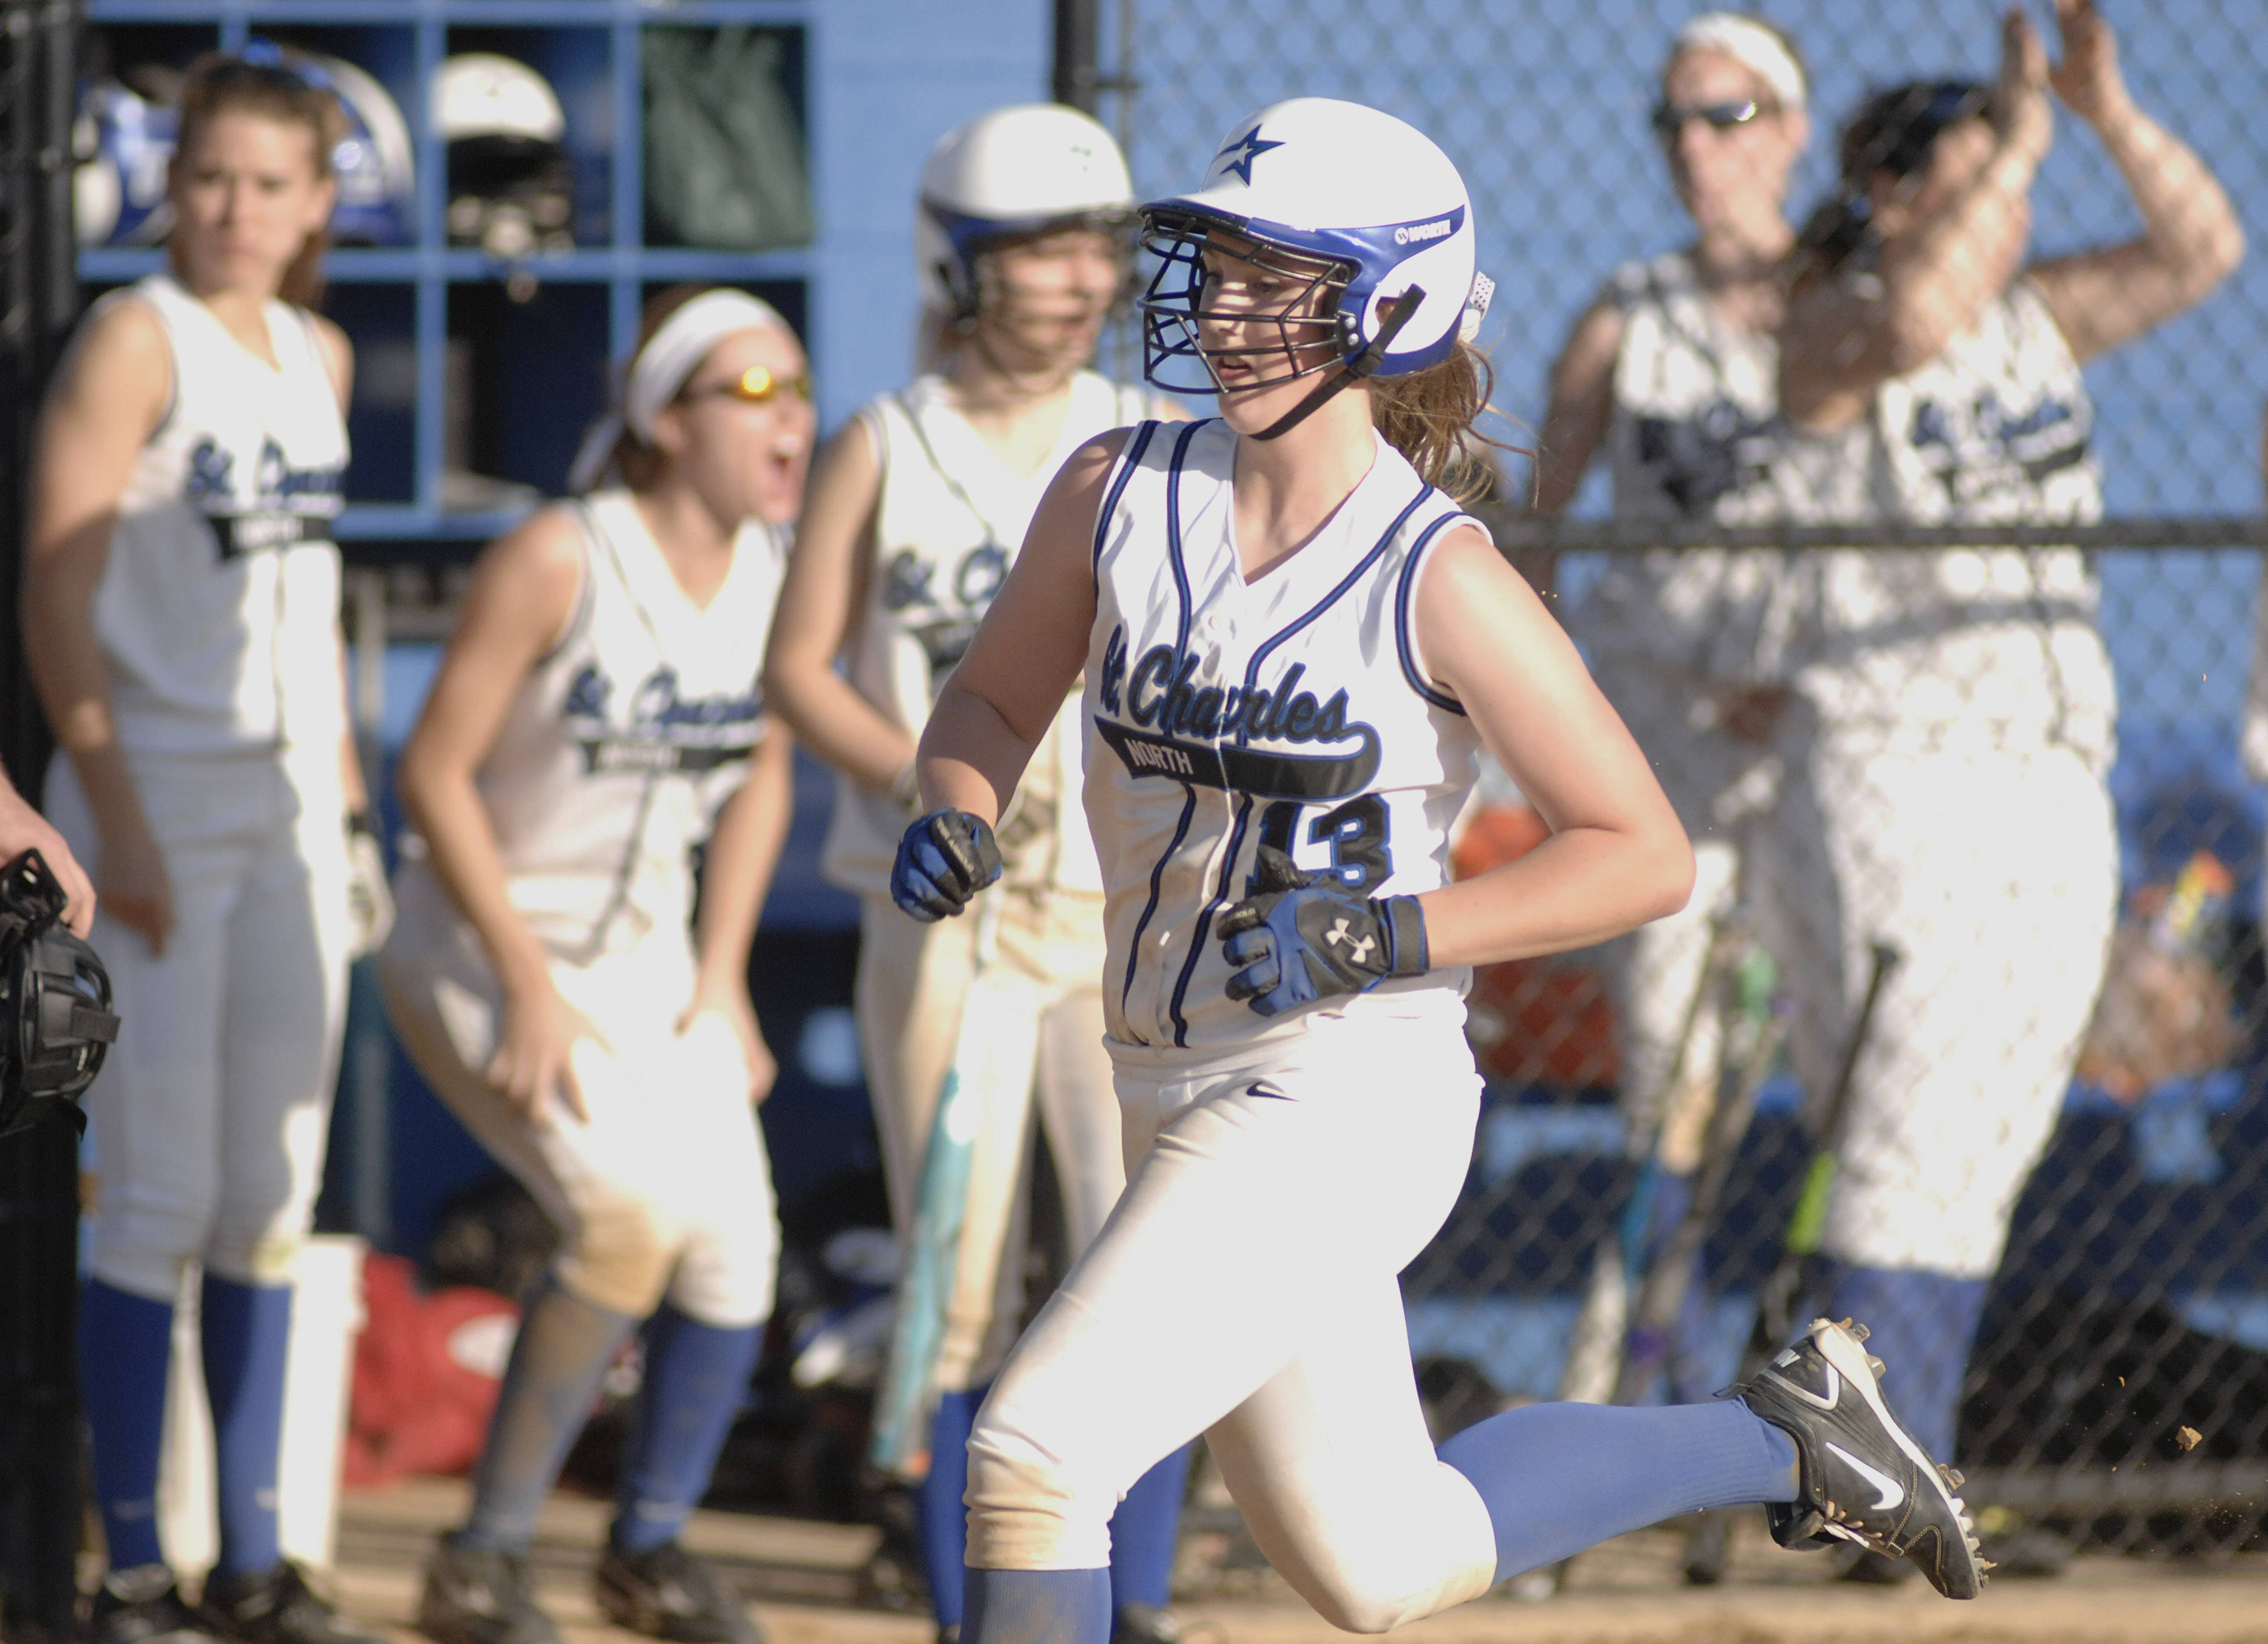 Scouting Tri-Cities area softball